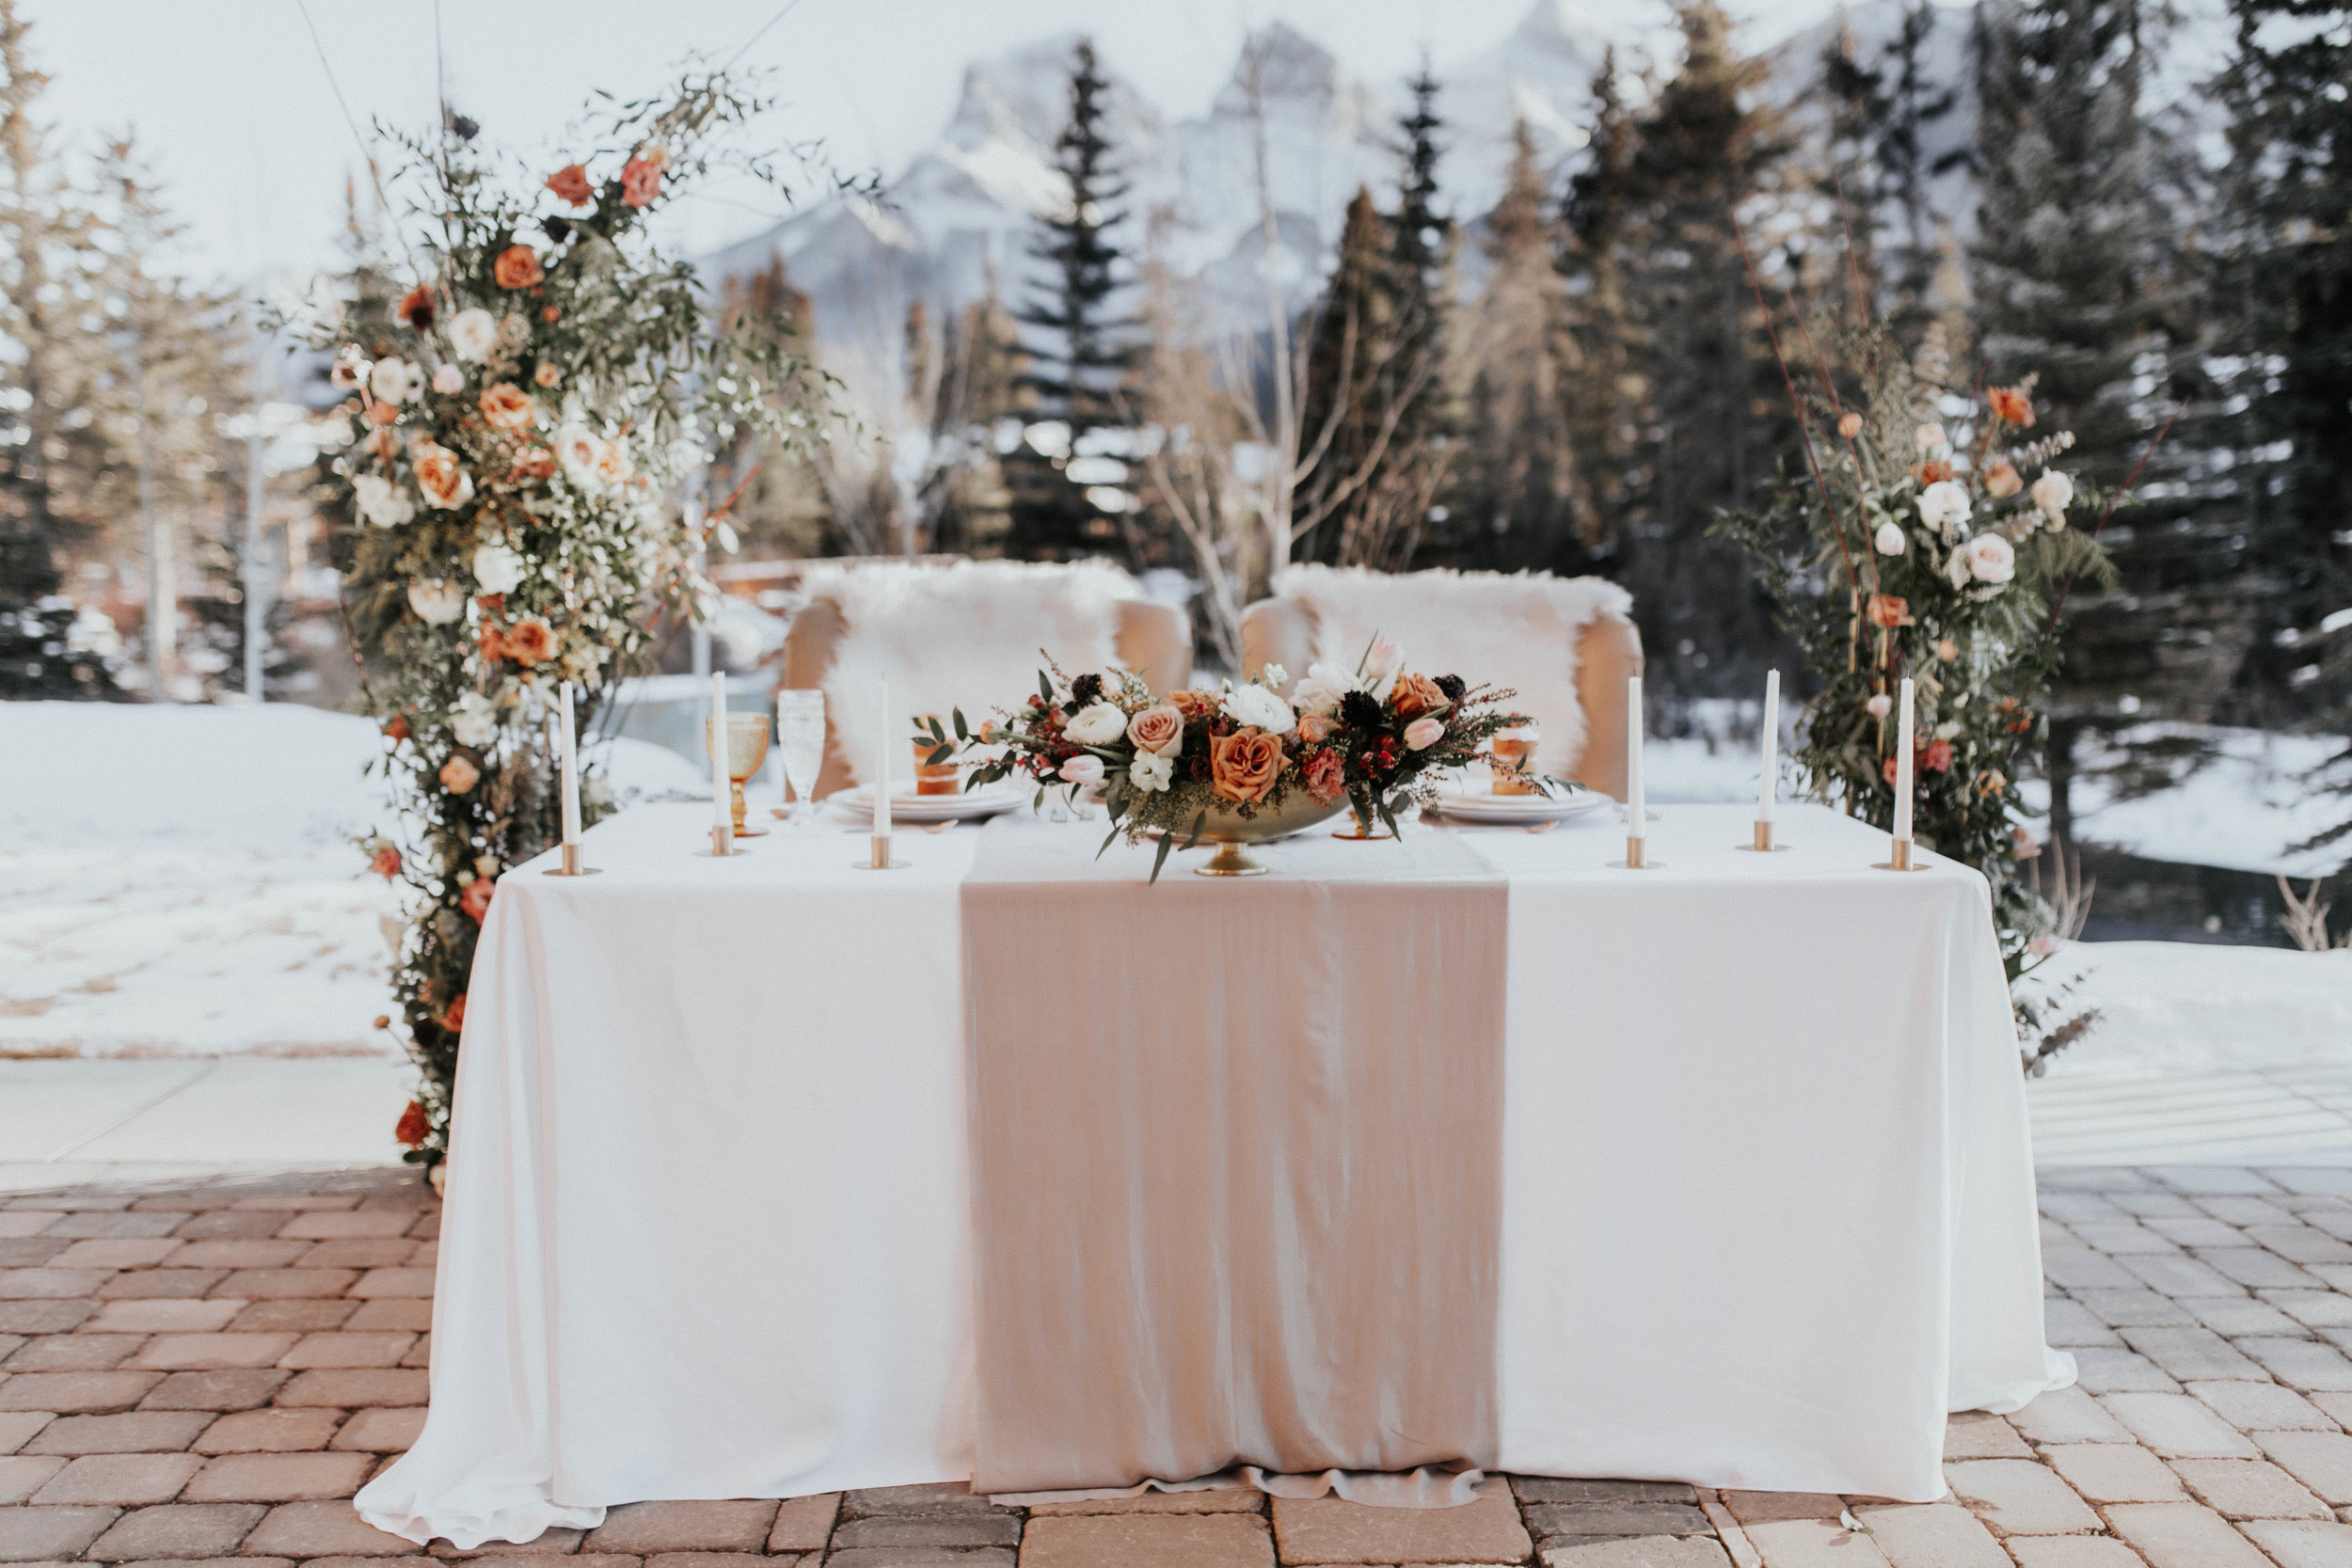 Sweetheart table Canmore wedding with floral columns and toffee roses, Flowers by Janie.jpg